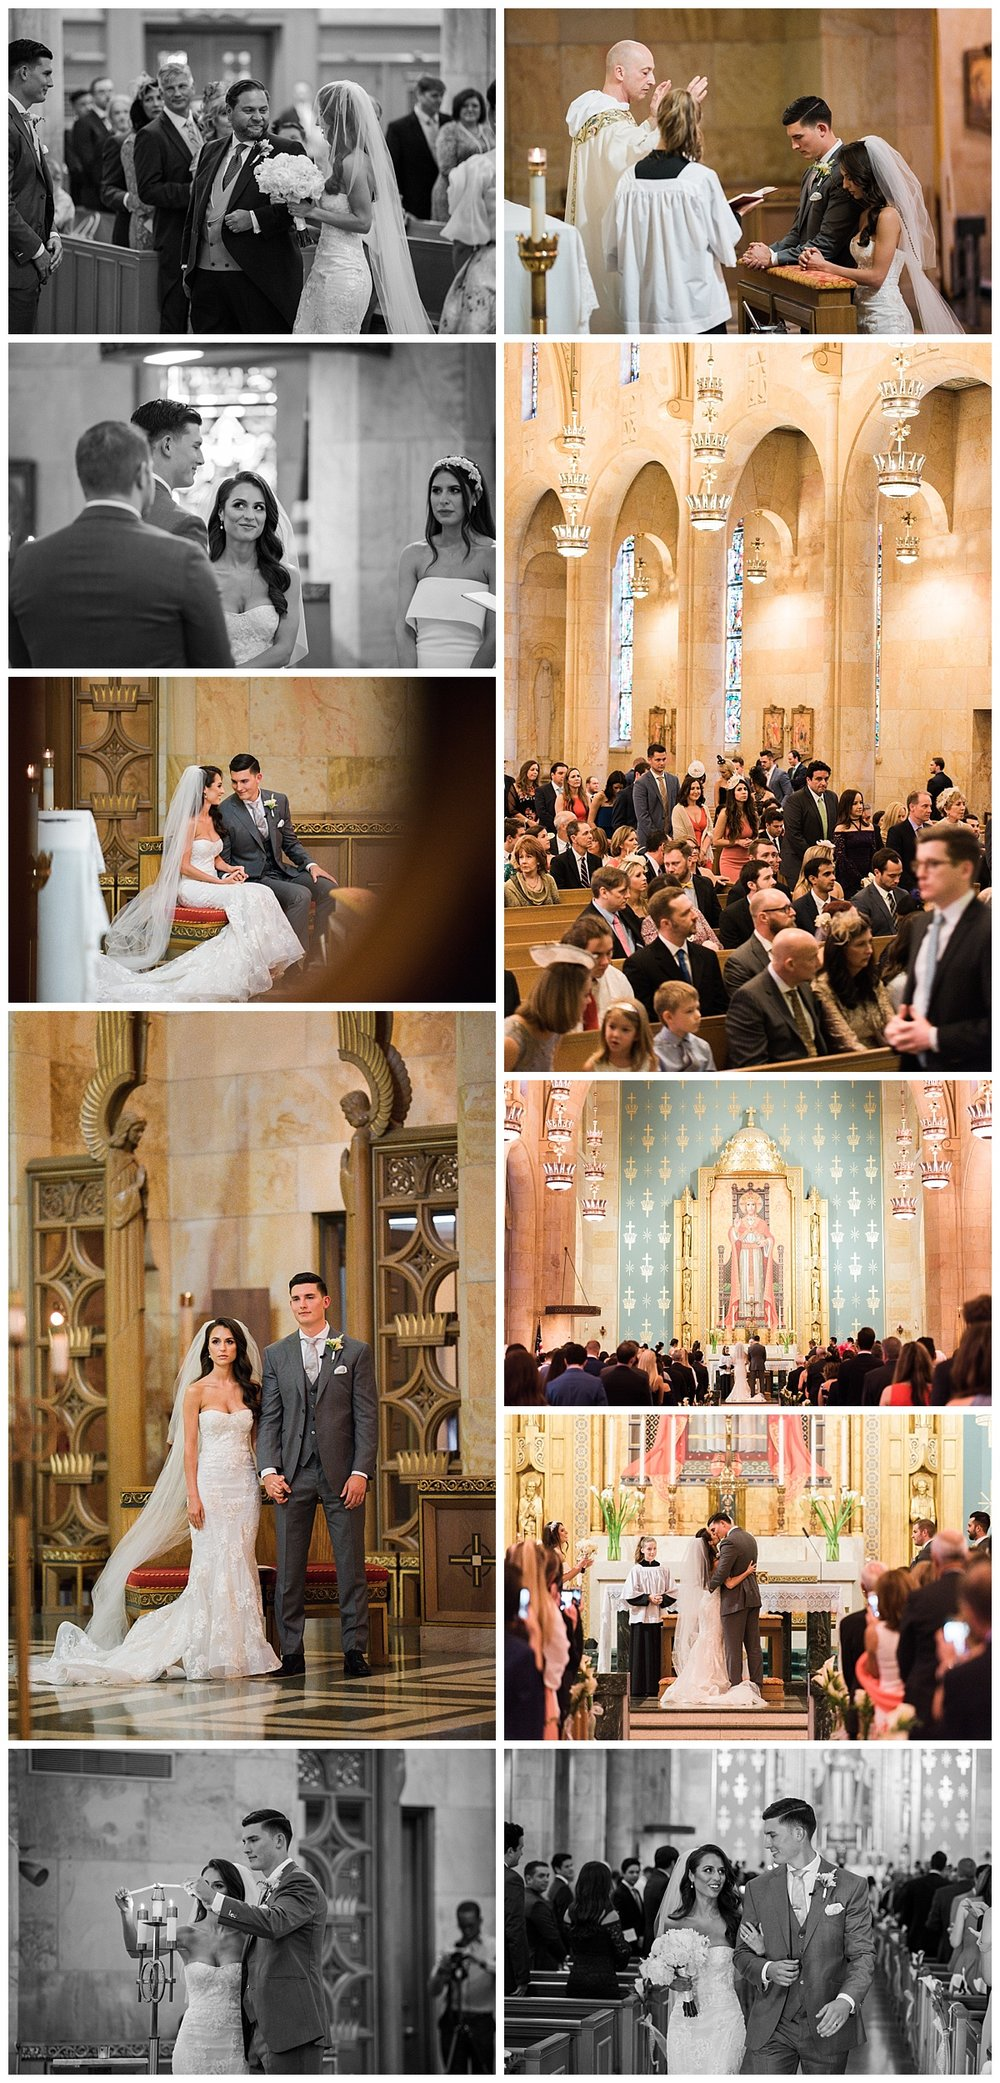 christ-the-king-catholic-church-wedding-ar-photography-5.jpg